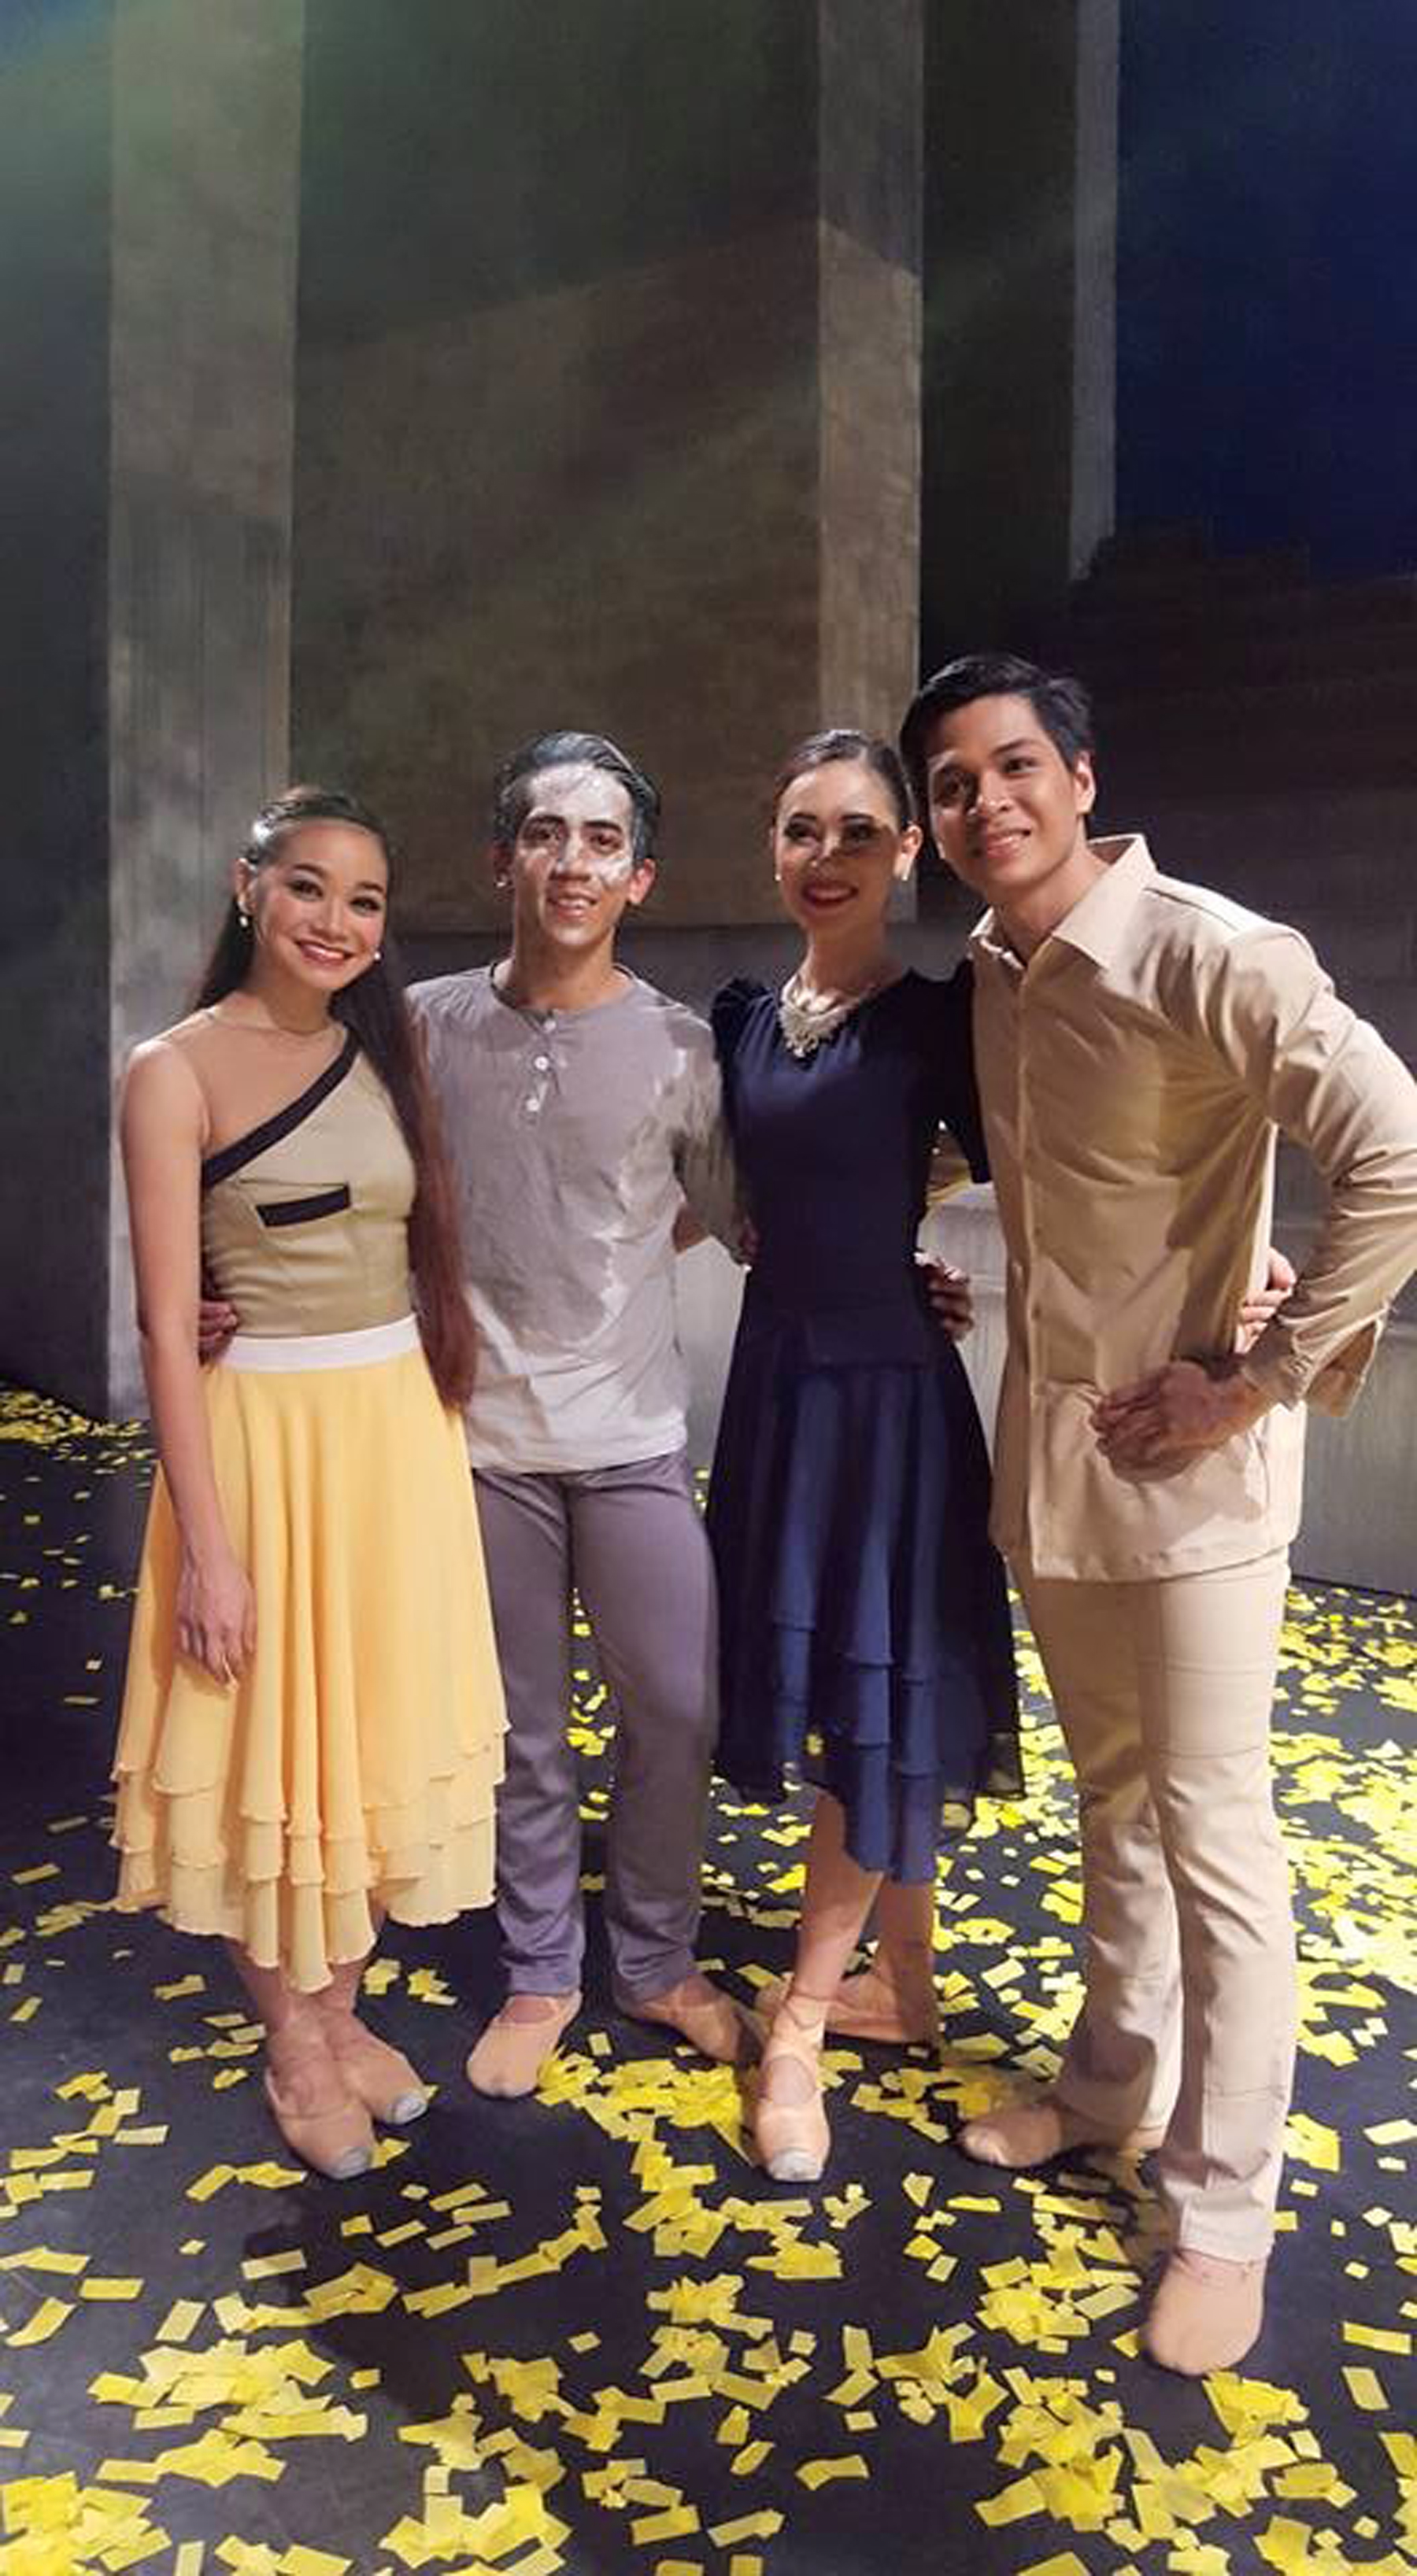 Mark (rightmost) reprises his role as Ninoy Aquino in    Rebel    when BM opens its 21st season. With him are co-stars Dawna Mangahas, Rudolph Capongcol and Abigail Oliveiro during    Rebel's    first run in February. Photo by Sofia Costales